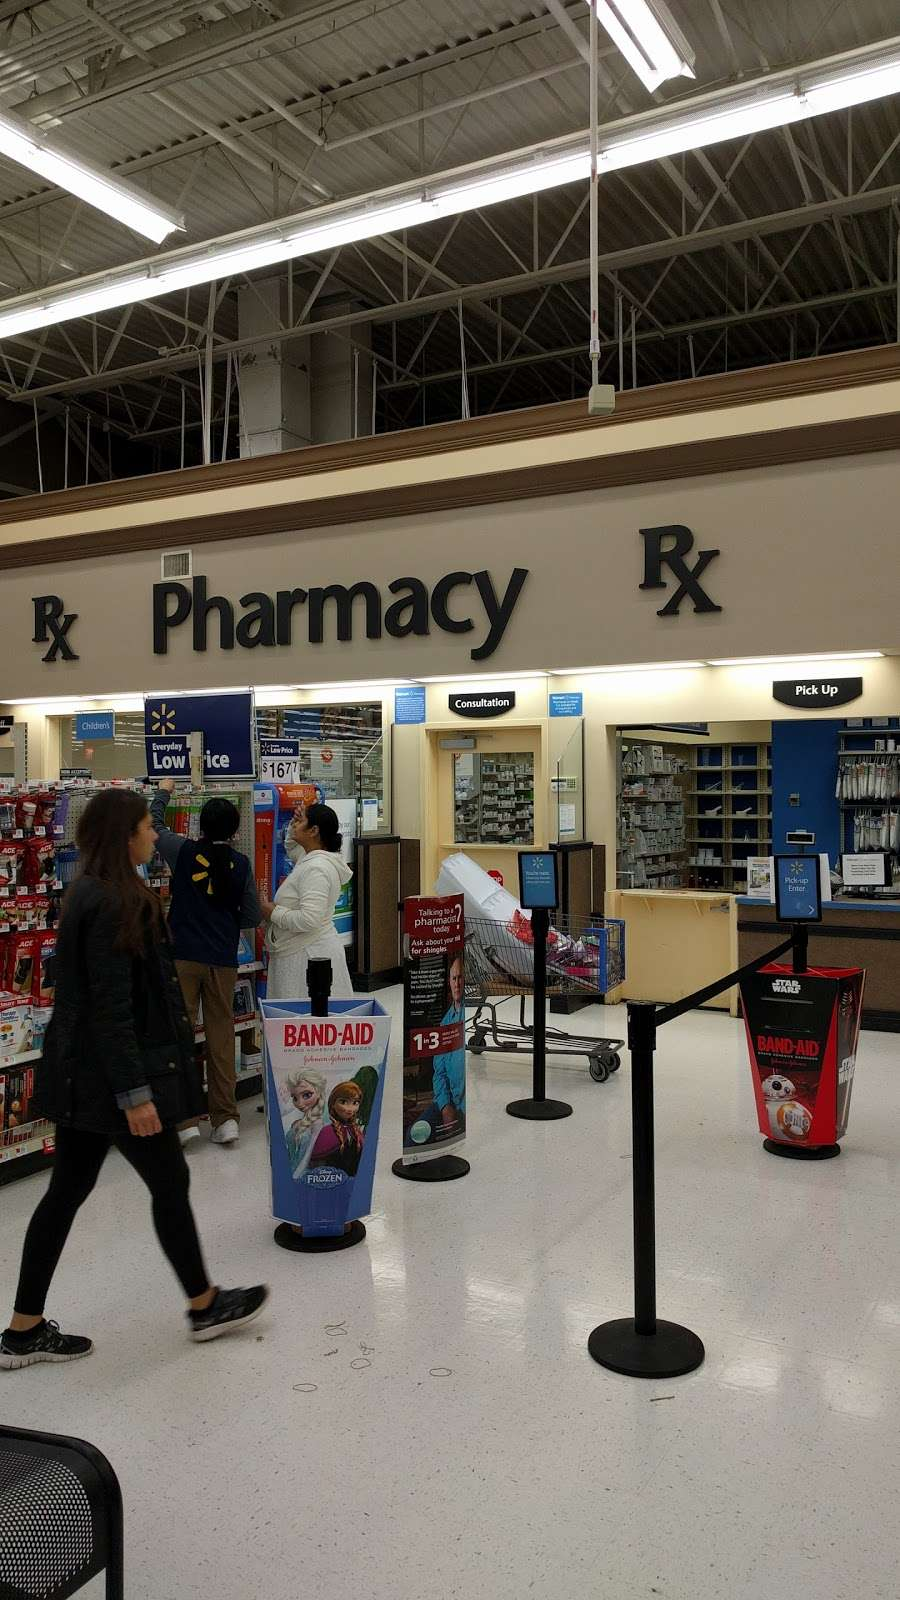 Walmart Pharmacy - pharmacy  | Photo 2 of 5 | Address: 300 Wootton St, Boonton, NJ 07005, USA | Phone: (973) 299-0944